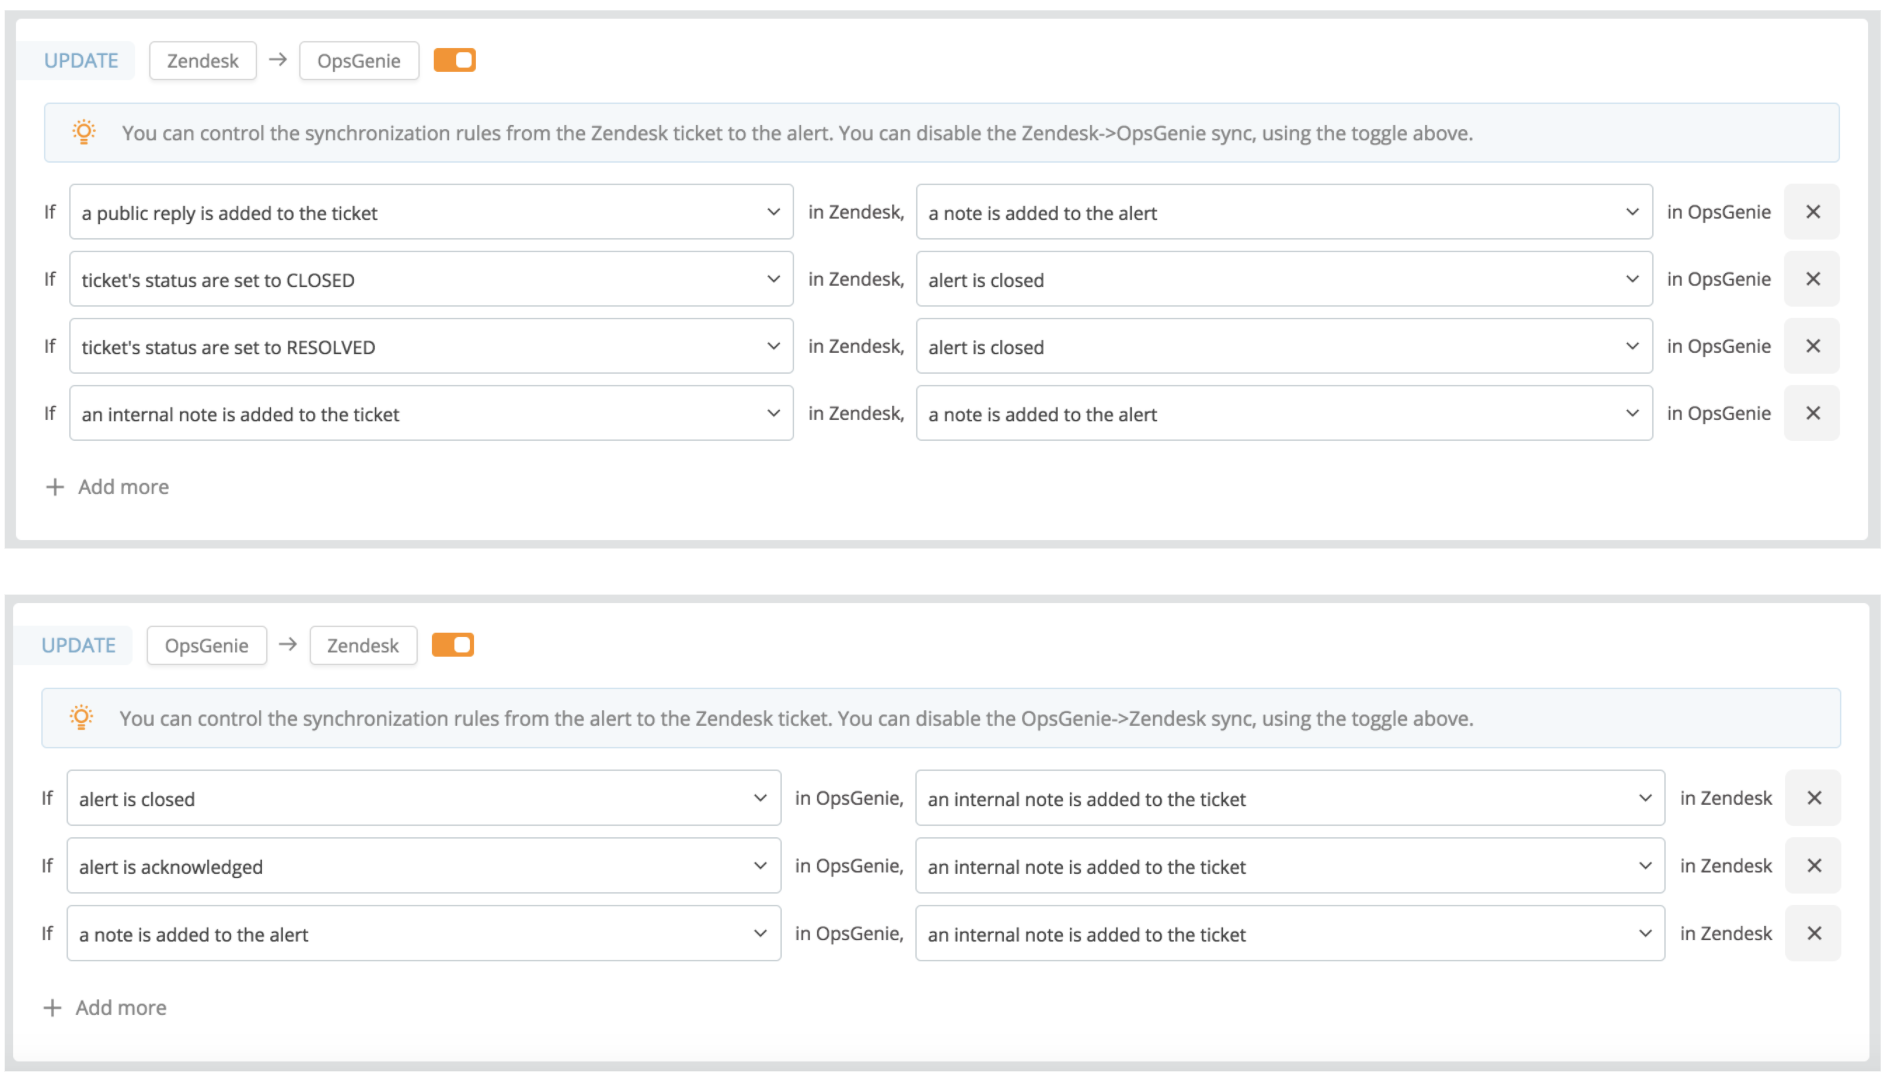 A screenshot showing a sample action mapping in Opsgenie's Zendesk integration.